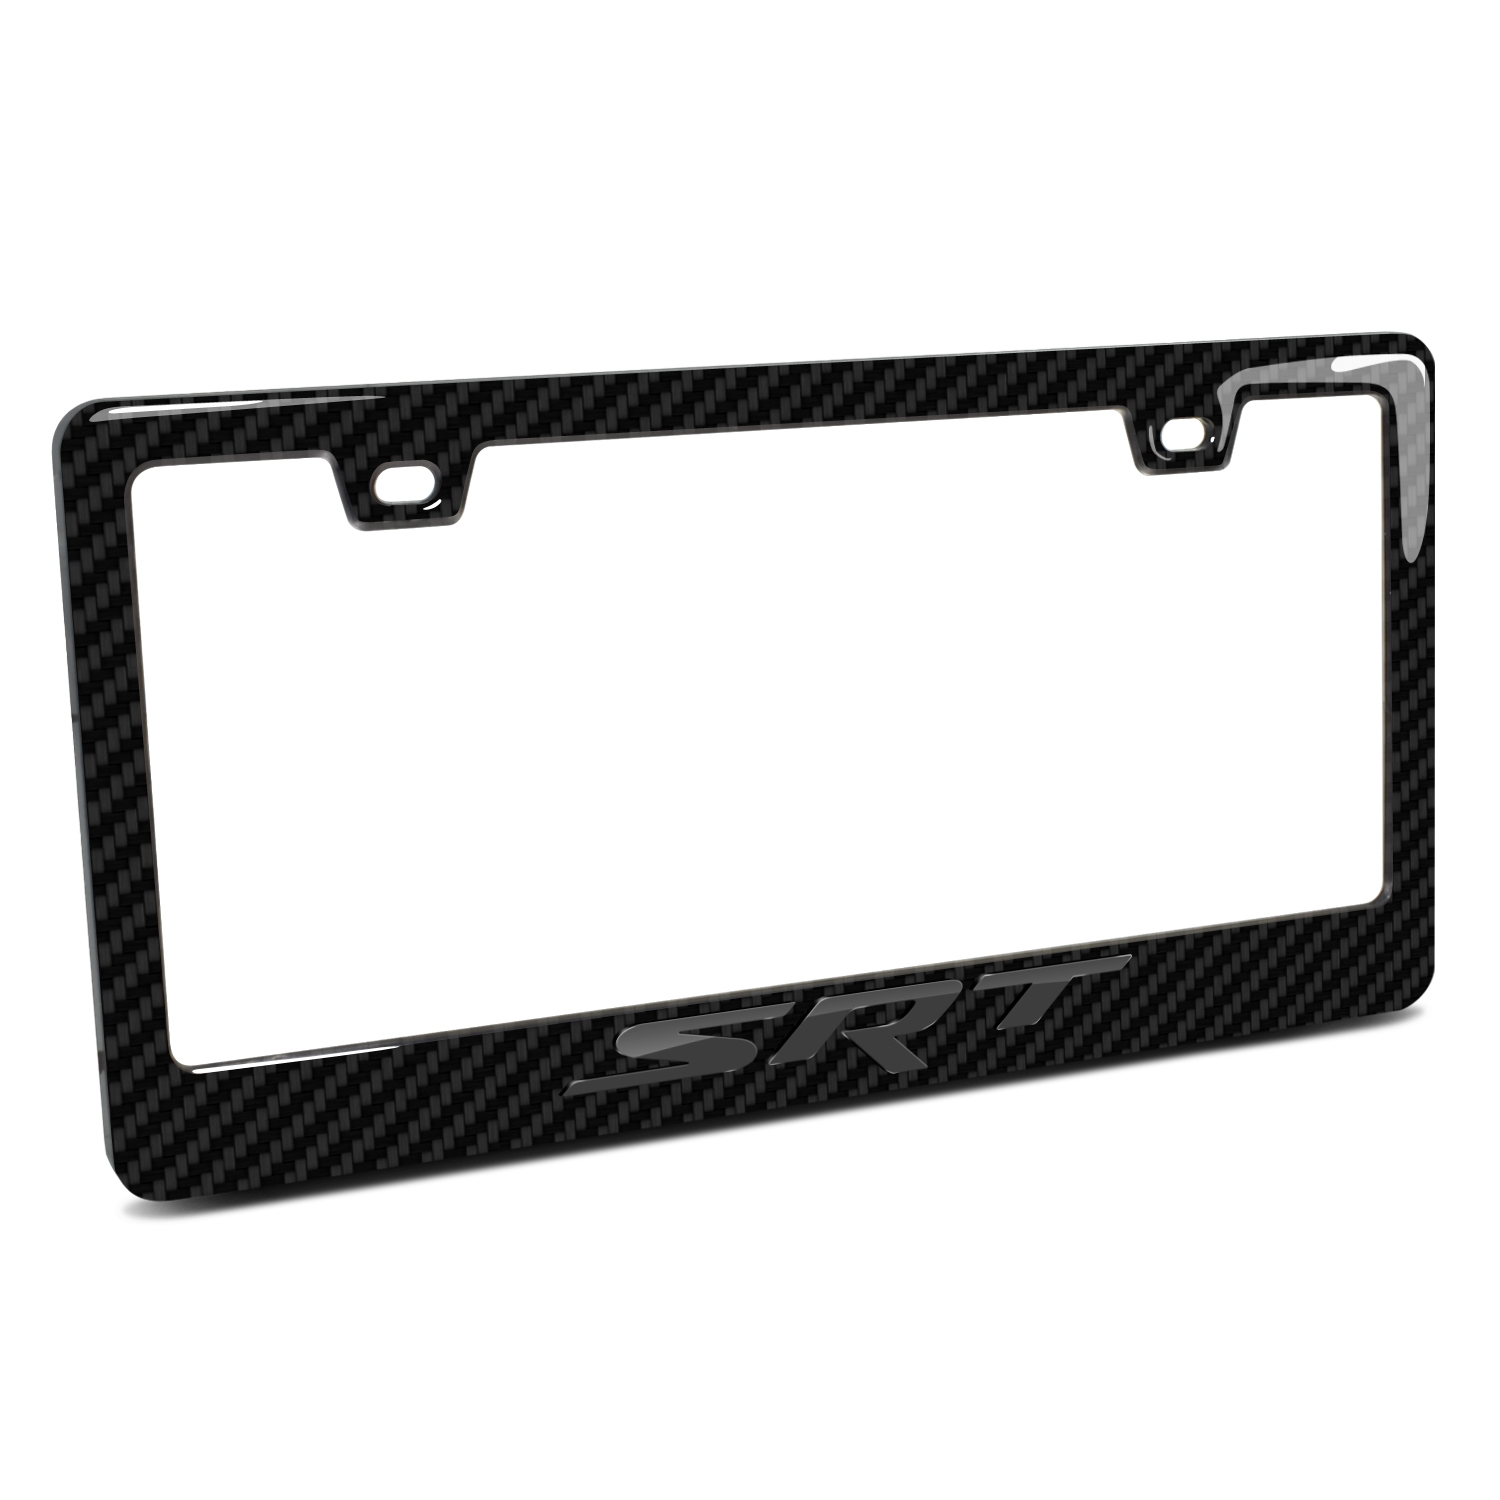 Dodge Jeep SRT Logo in 3D Black on Black Real 3K Carbon Fiber Finish ABS Plastic License Plate Frame